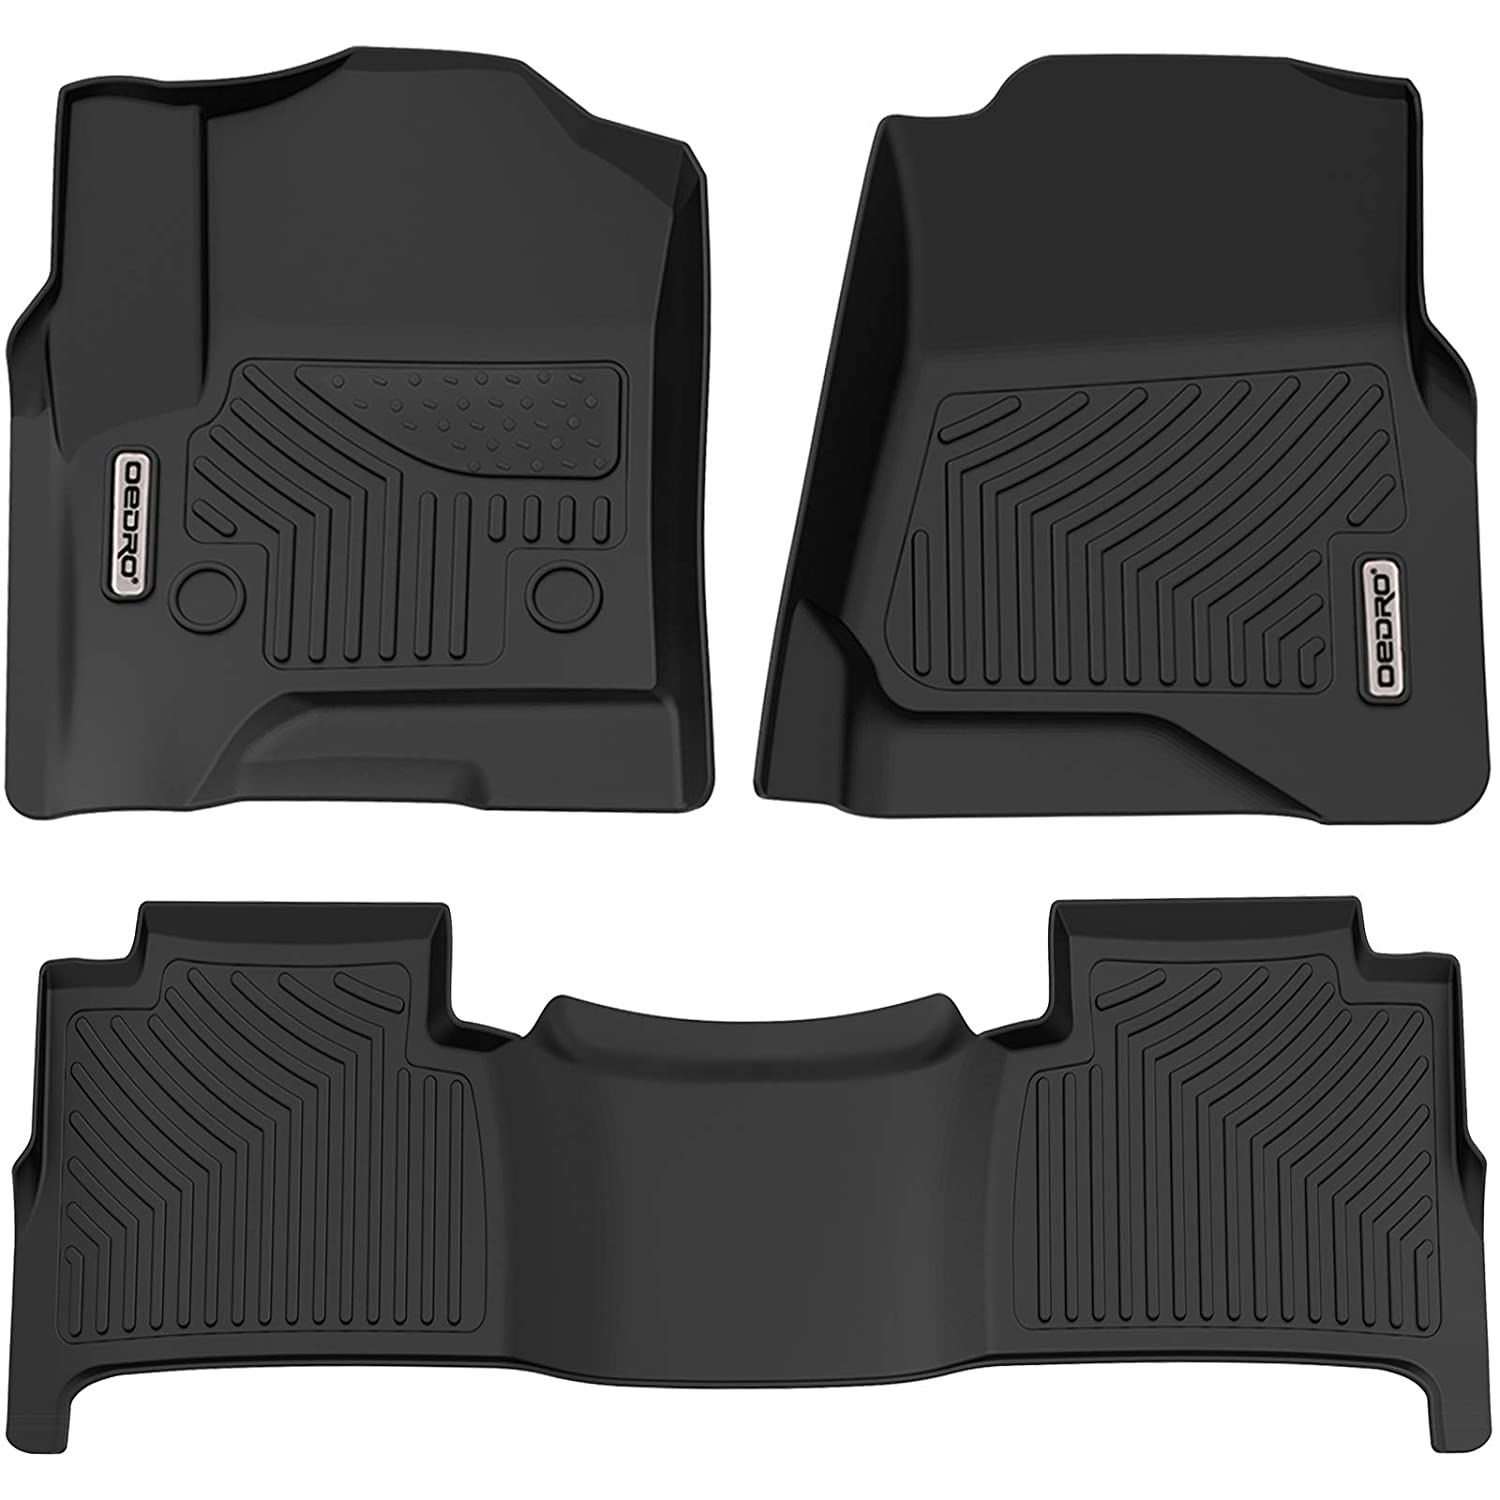 Full Set Liners Unique Black TPE All-Weather Guard Includes 1st and 2nd Row oEdRo Floor Mats Compatible for 2015-2019 Chevrolet Tahoe//GMC Yukon